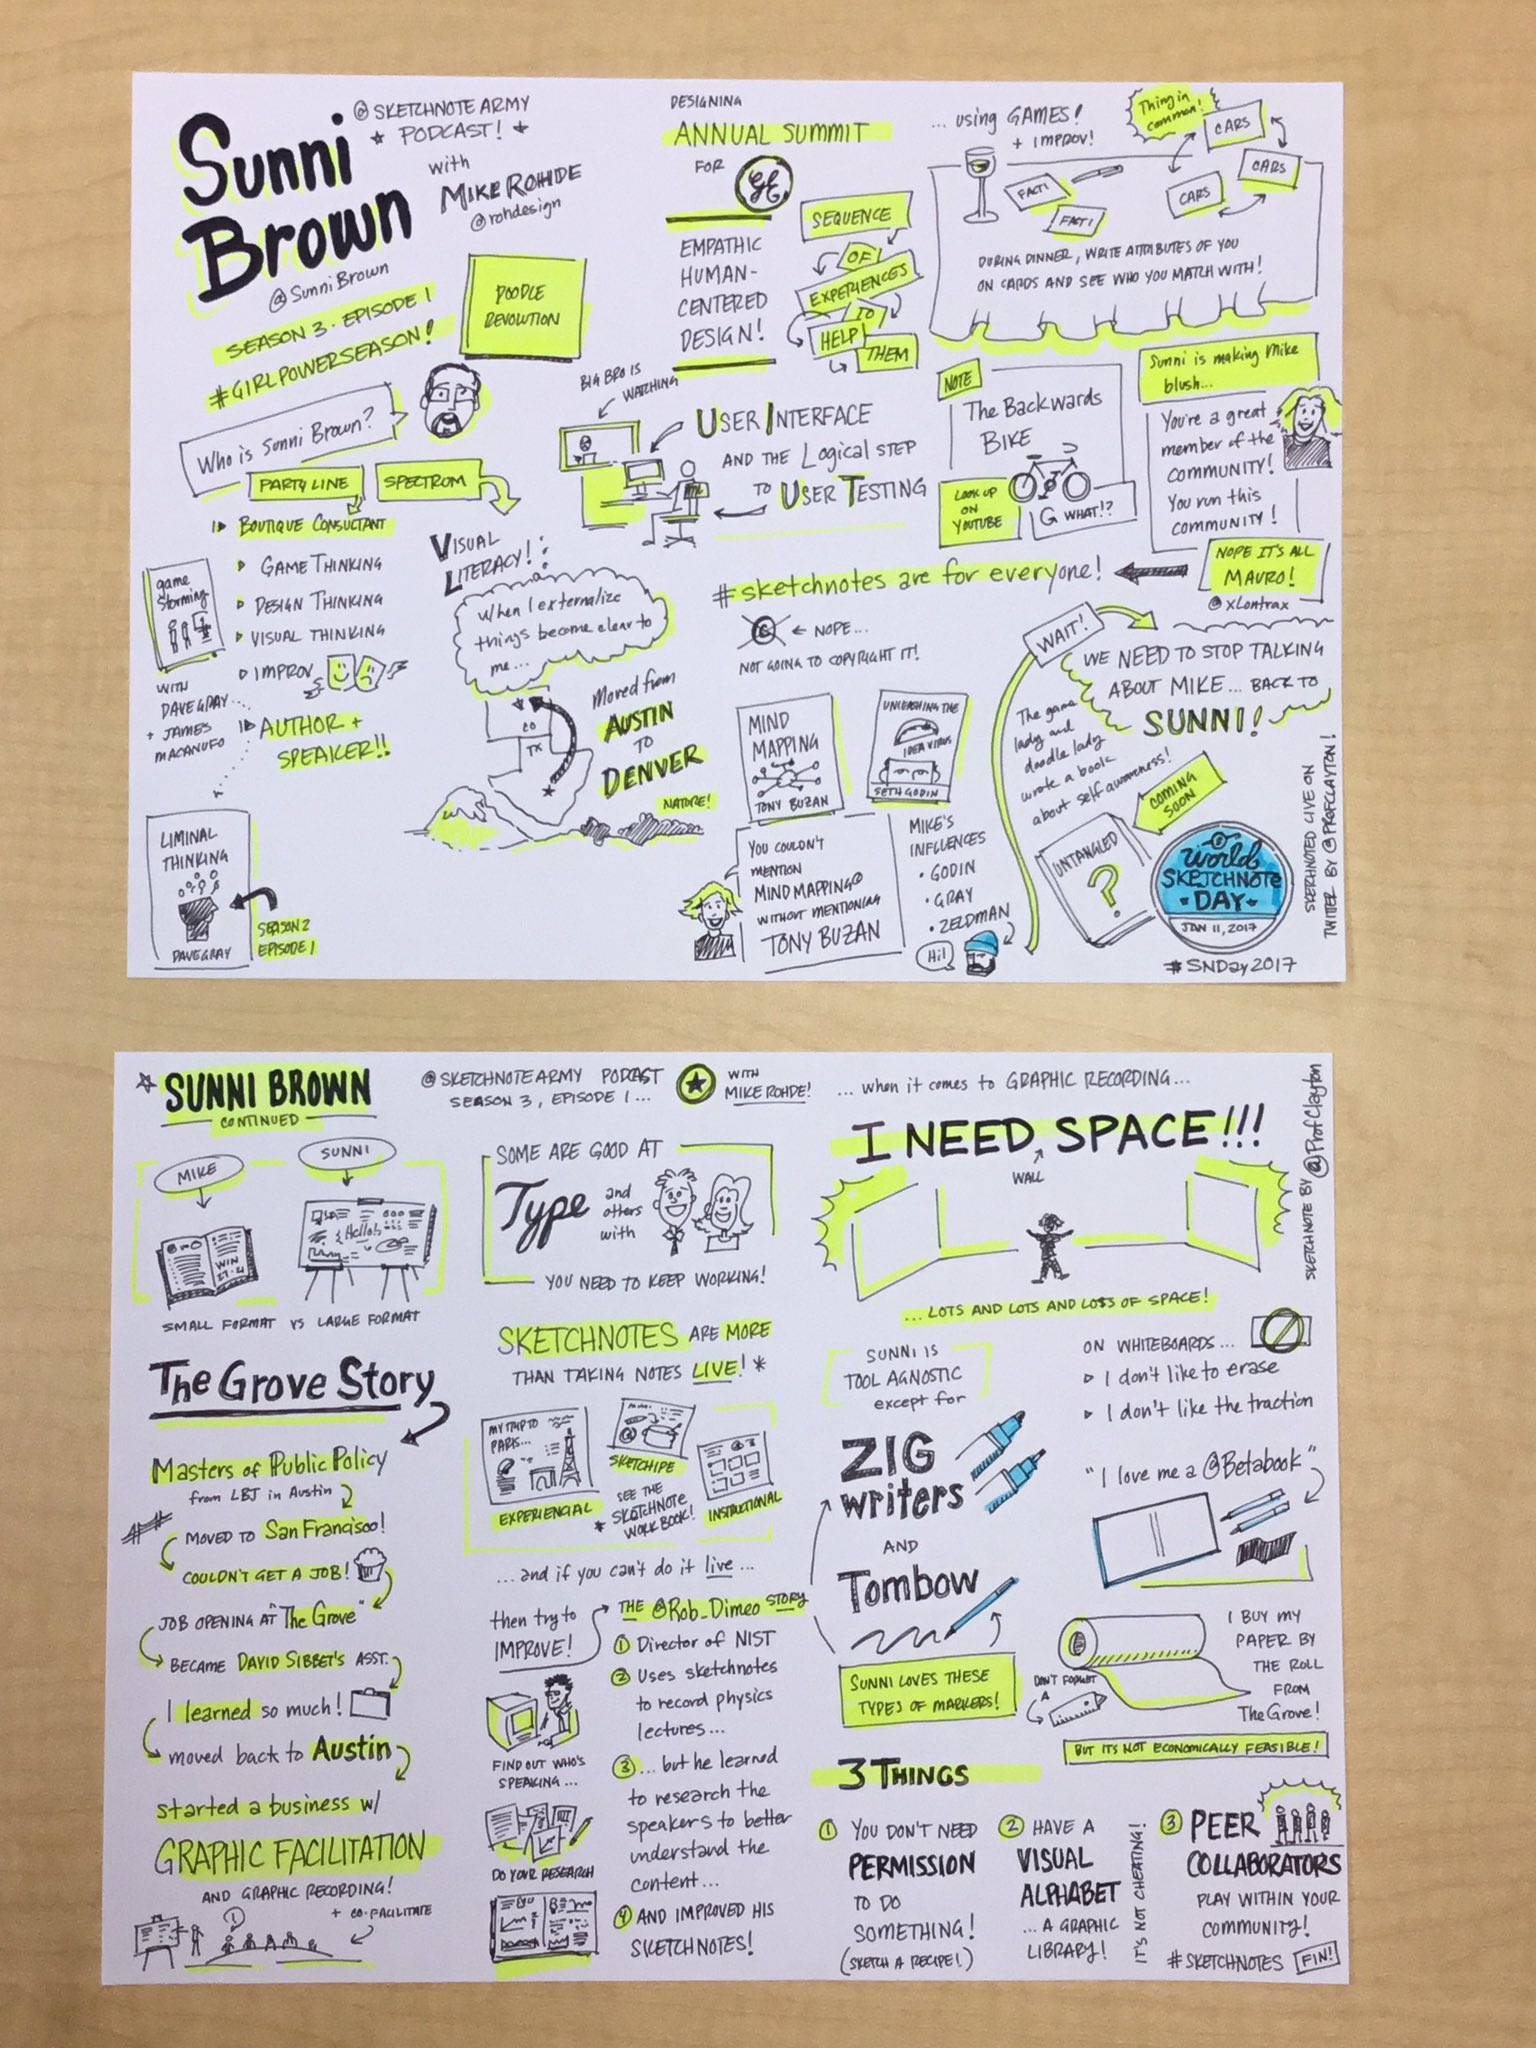 Happy #SNDay2017! Here are the final #sketchnotes from my live session of the @SketchnoteArmy podcast w/ @SunniBrown & @rohdesign! @xLontrax https://t.co/SbV524zGUm